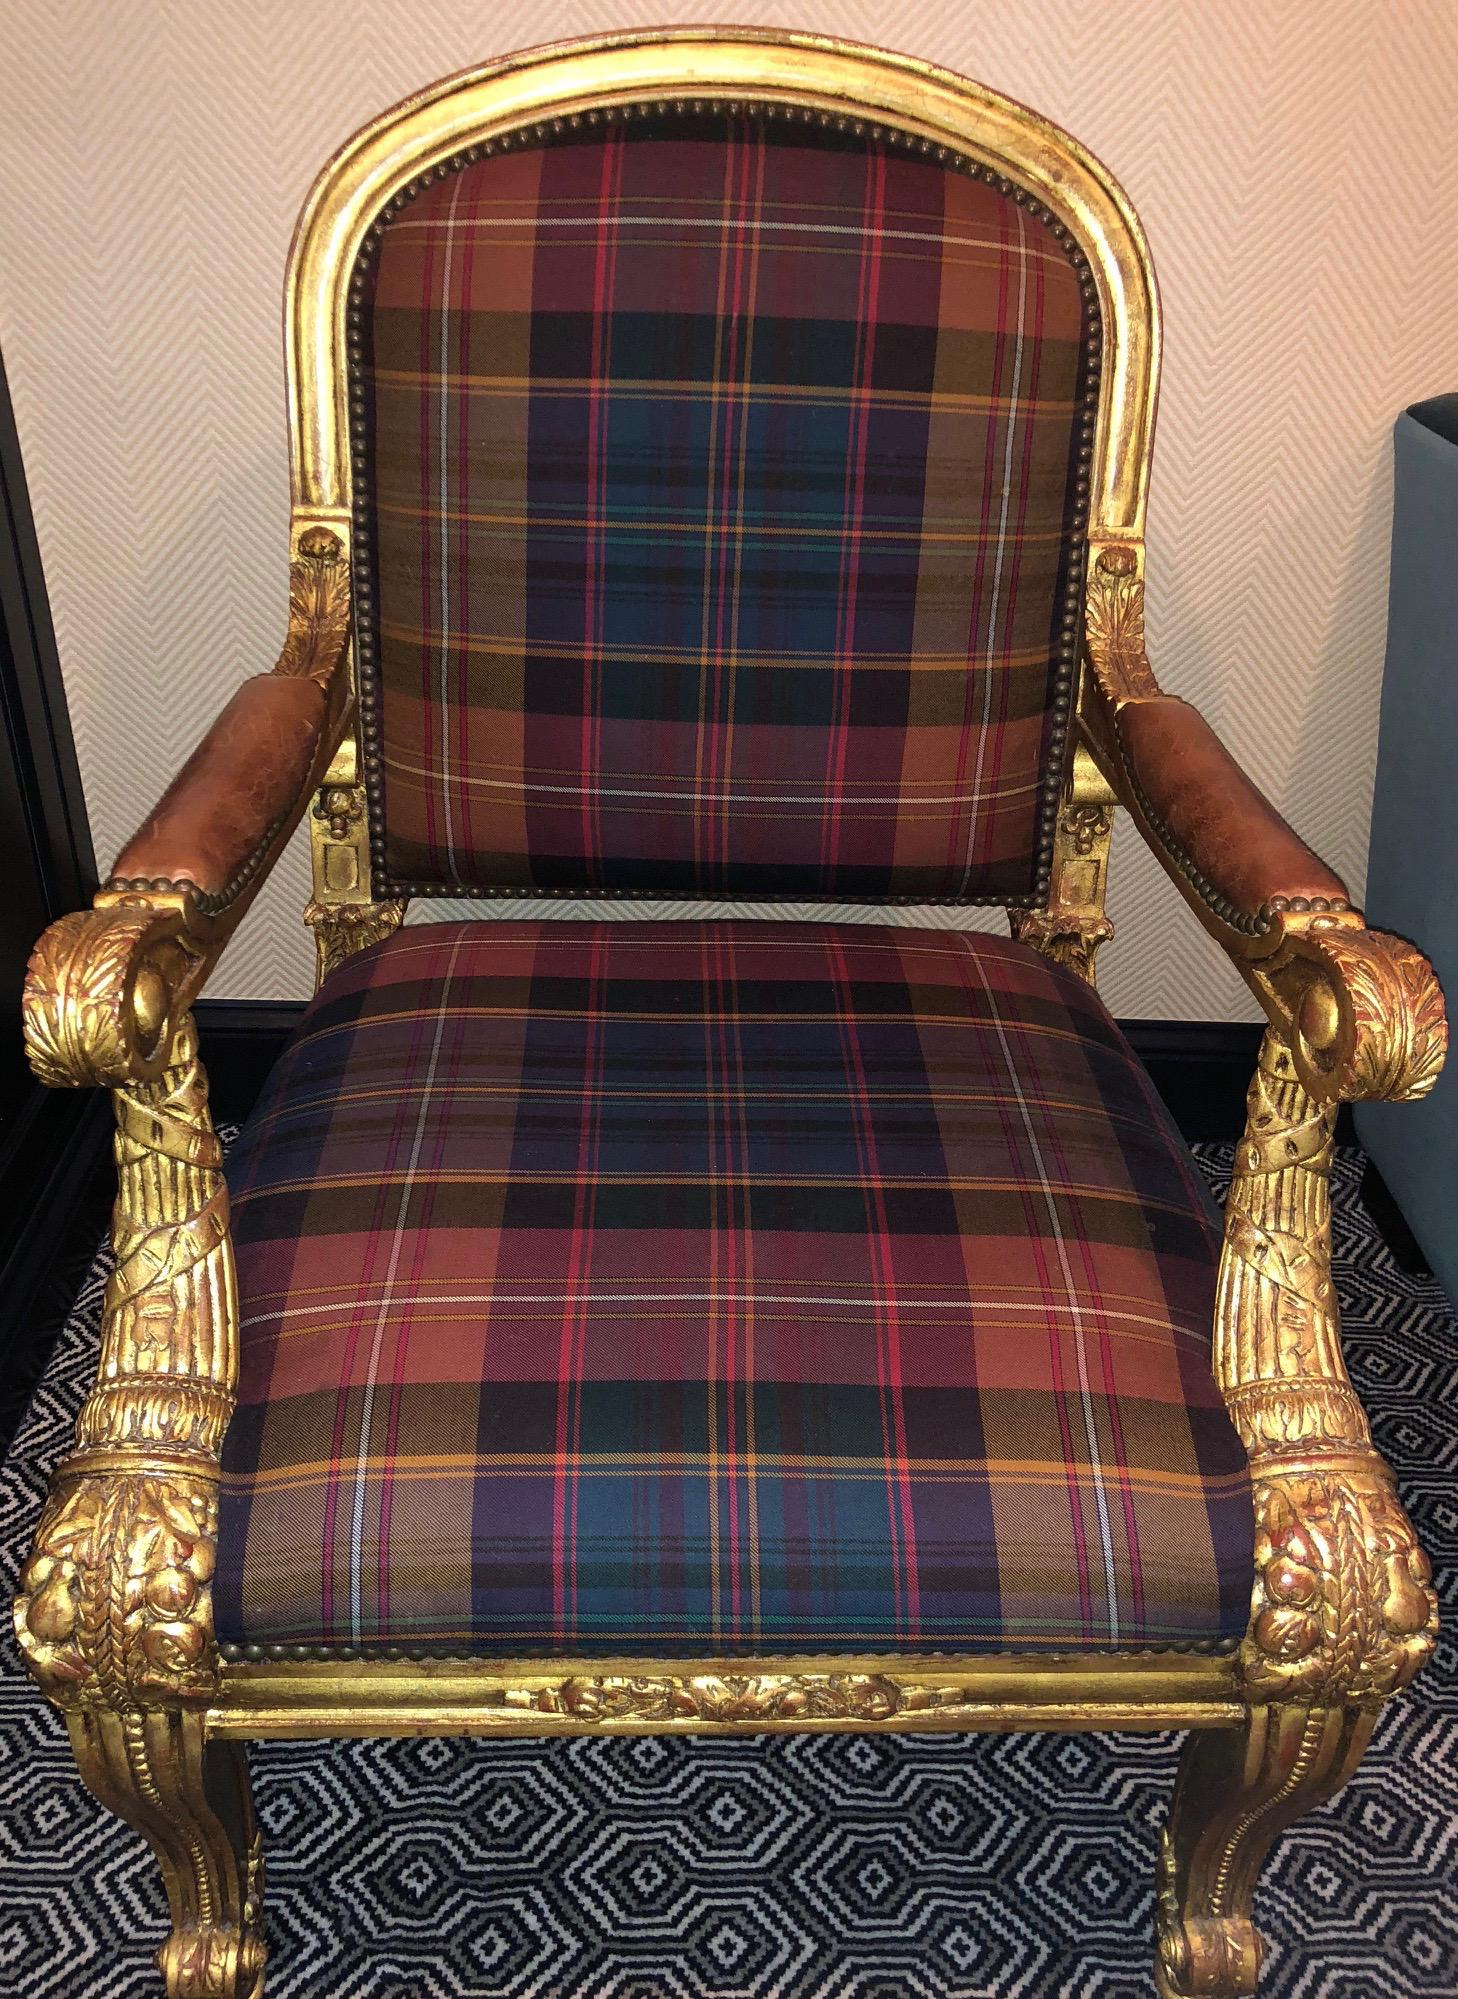 Ralph Lauren Carved Gold, Plaid U0026 Leather Chair   Dukeu0027s Host Chair   Image  4